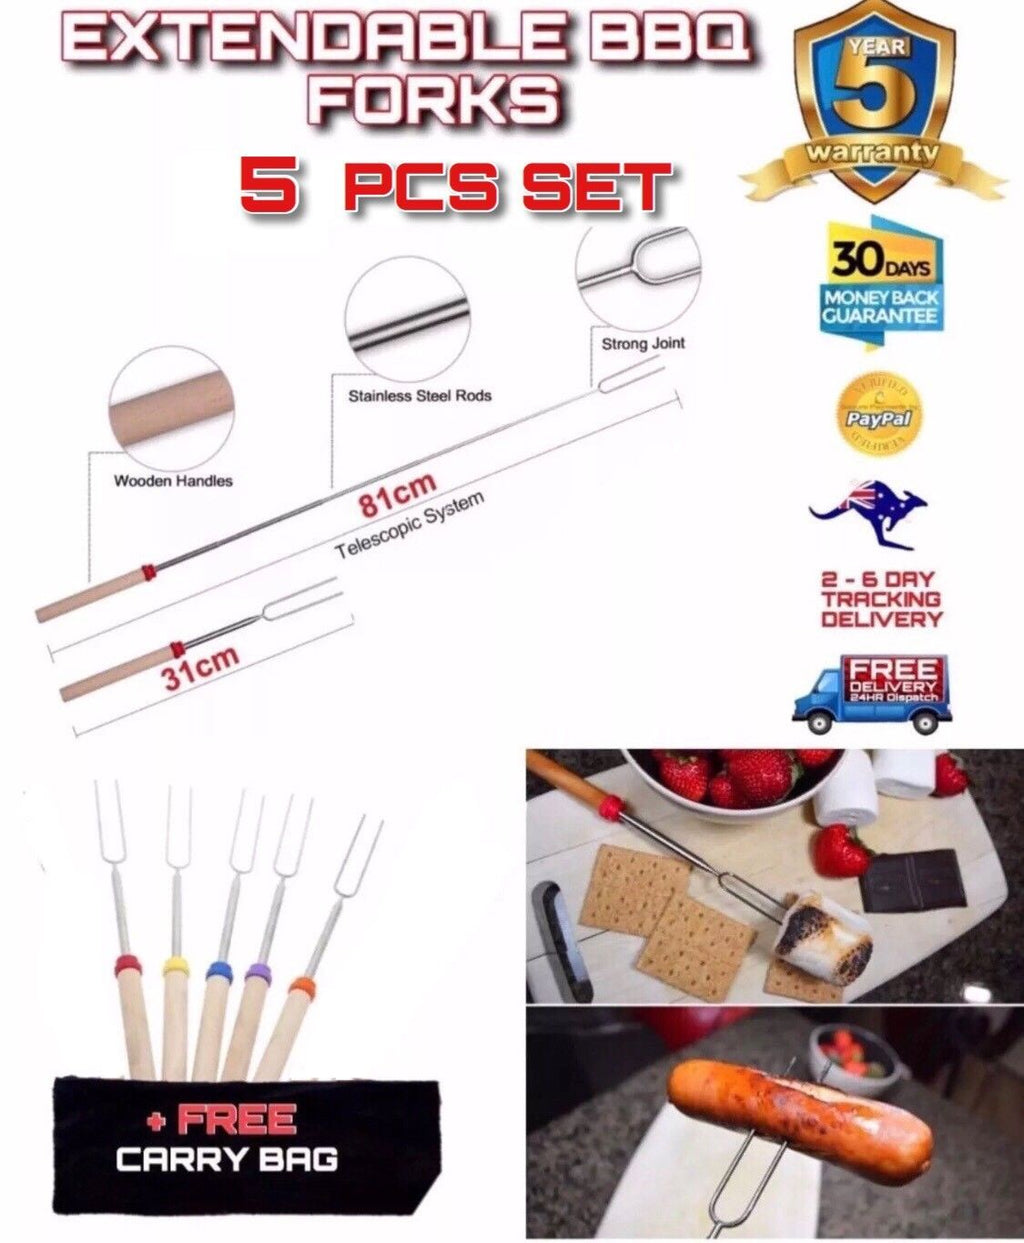 5 PCE Telescopic  Extendable Roasting Marshmallow BBQ Fork +CARRY BAG - Outback Tactical